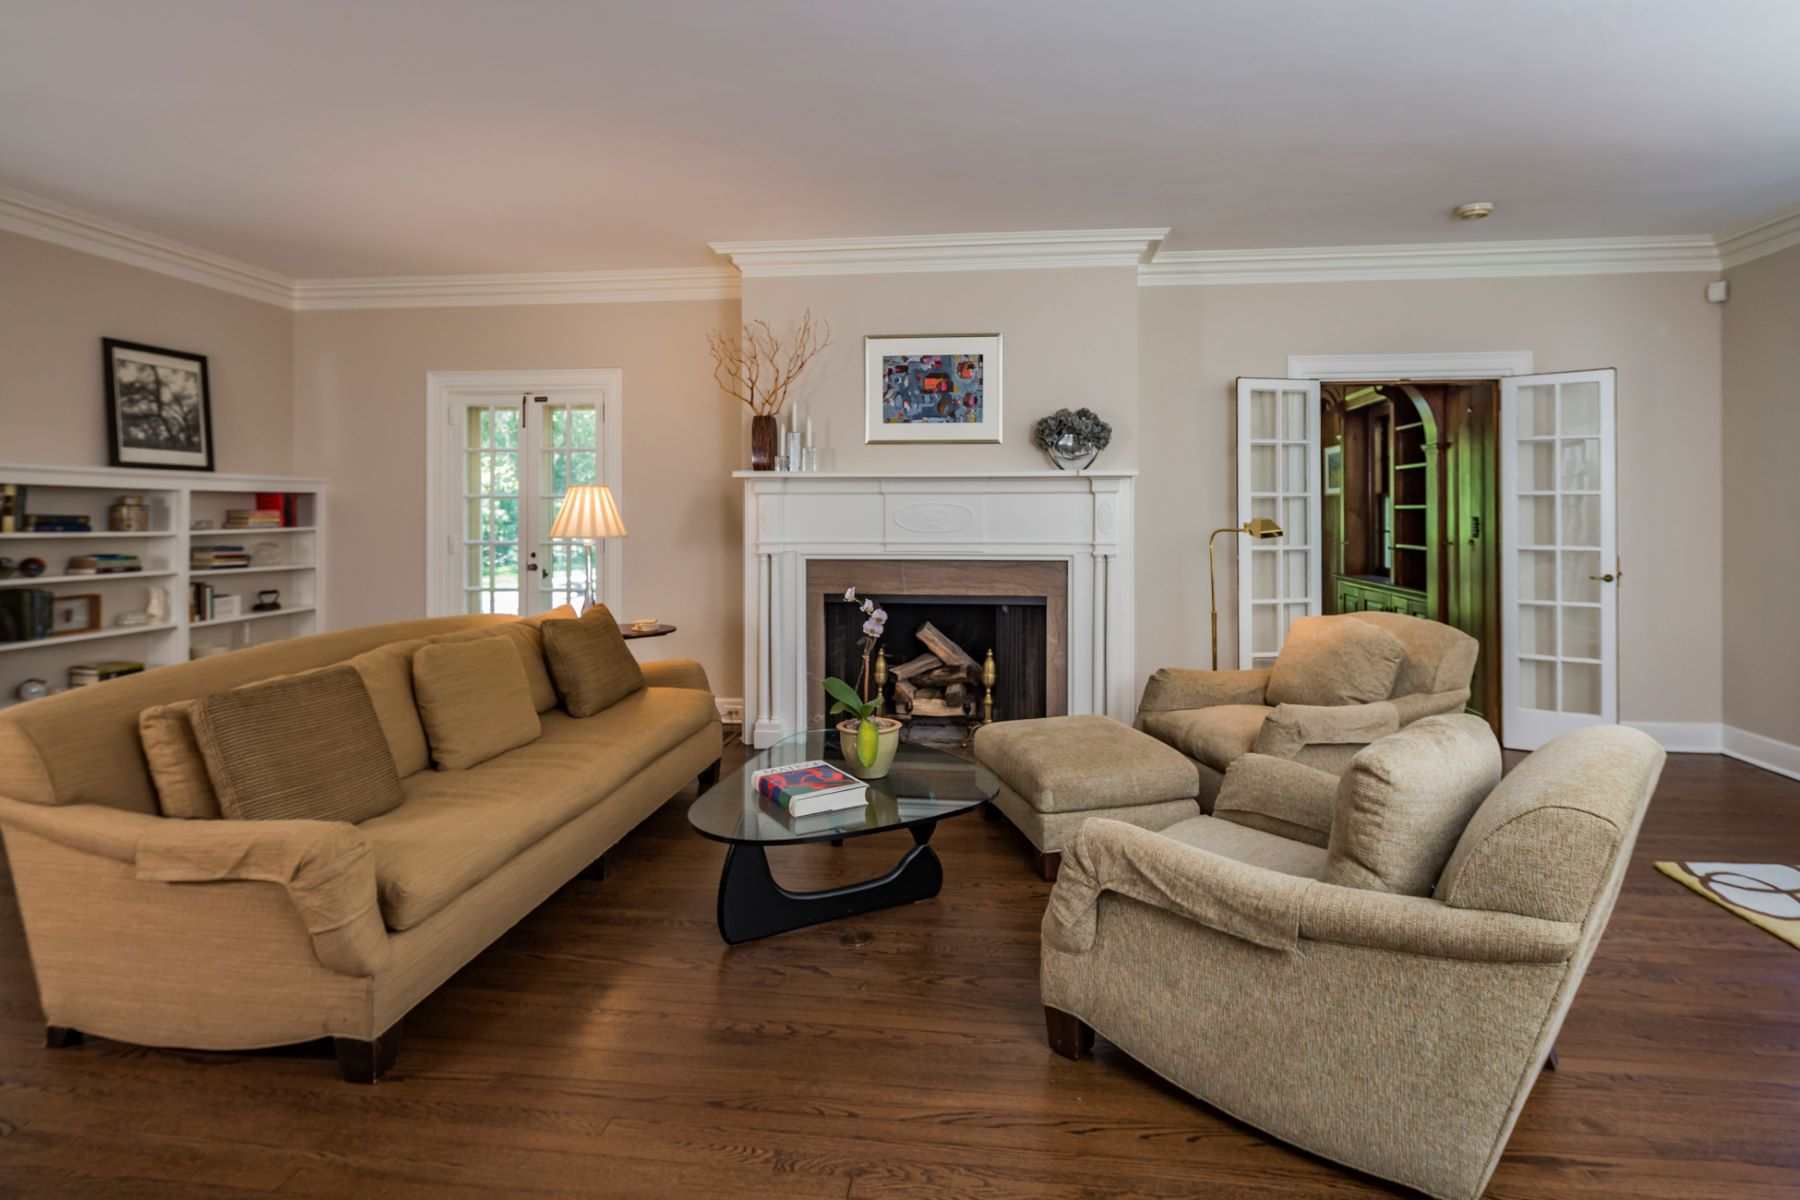 Additional photo for property listing at A Warm and Noble Presence in the Western Section 80 Westcott Road Princeton, Nueva Jersey 08540 Estados Unidos